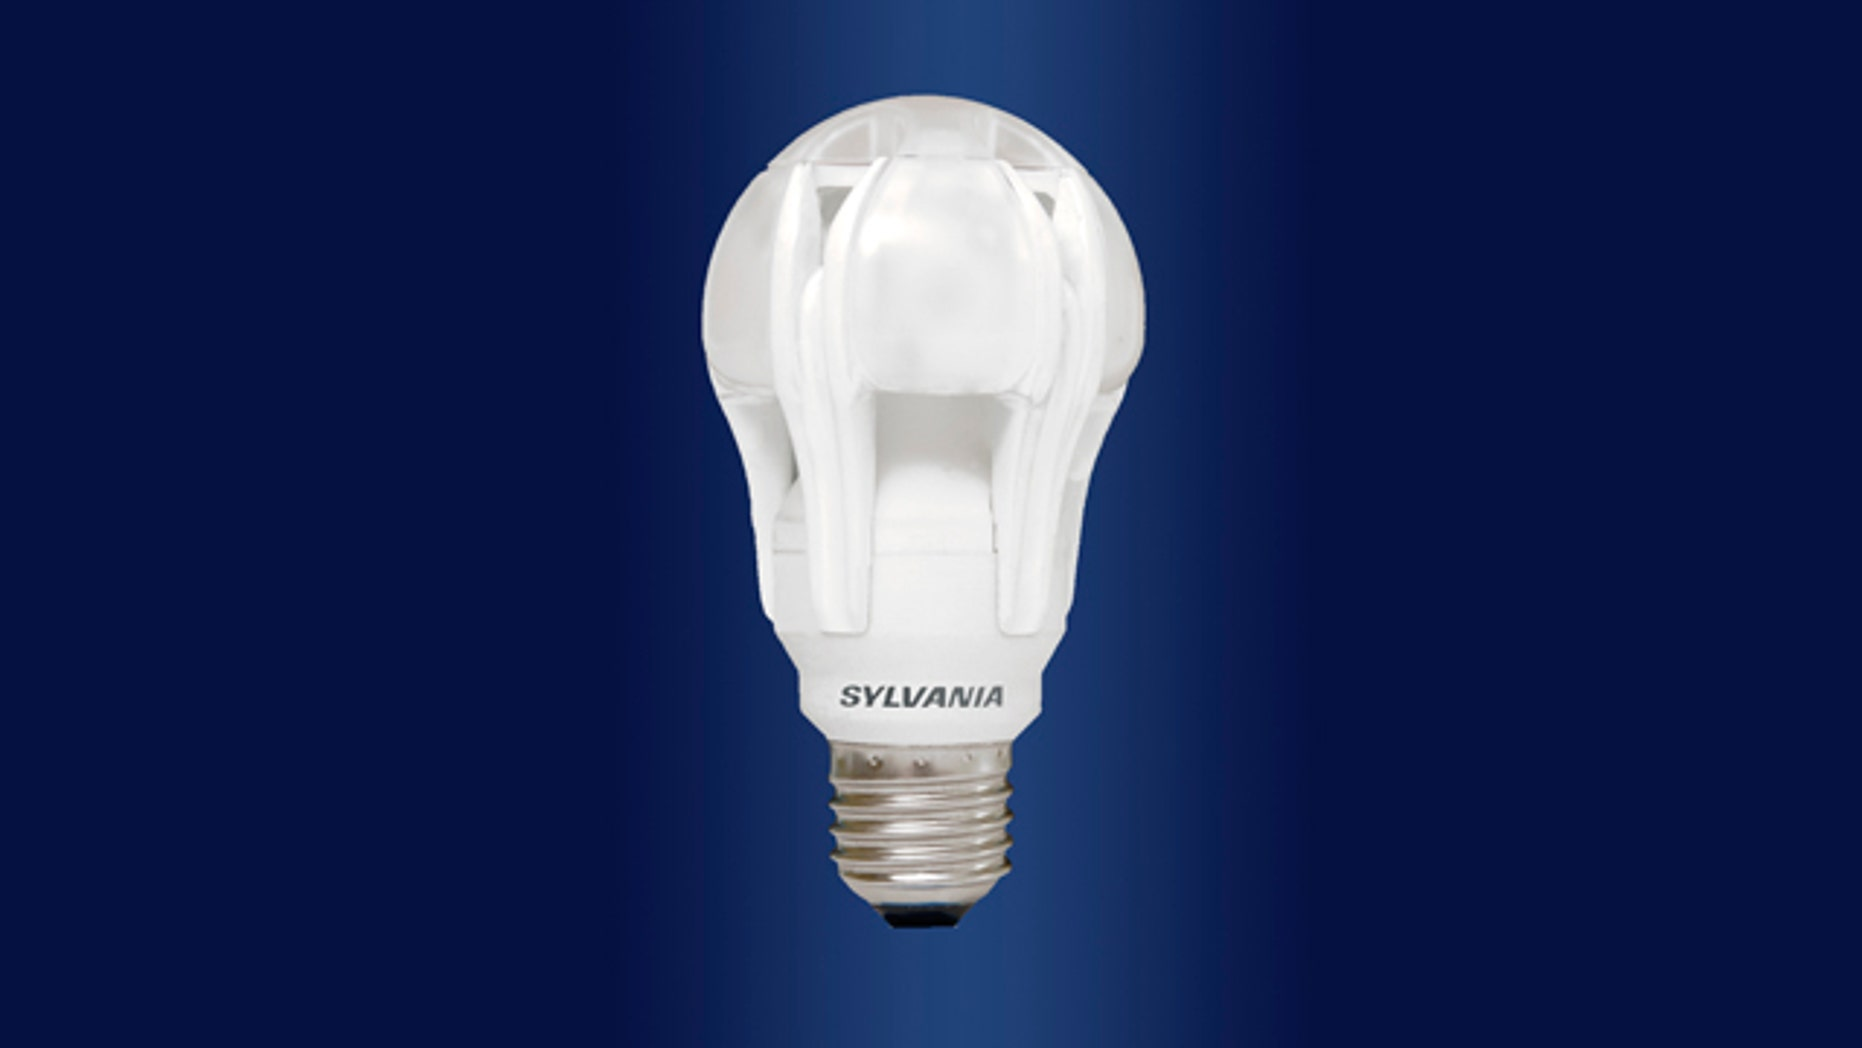 This is Osram Sylvania's ULTRA High Performance Series omni-directional LED A-Line lamp, designed to give the equivalent brightness of a 75-watt standard bulb.